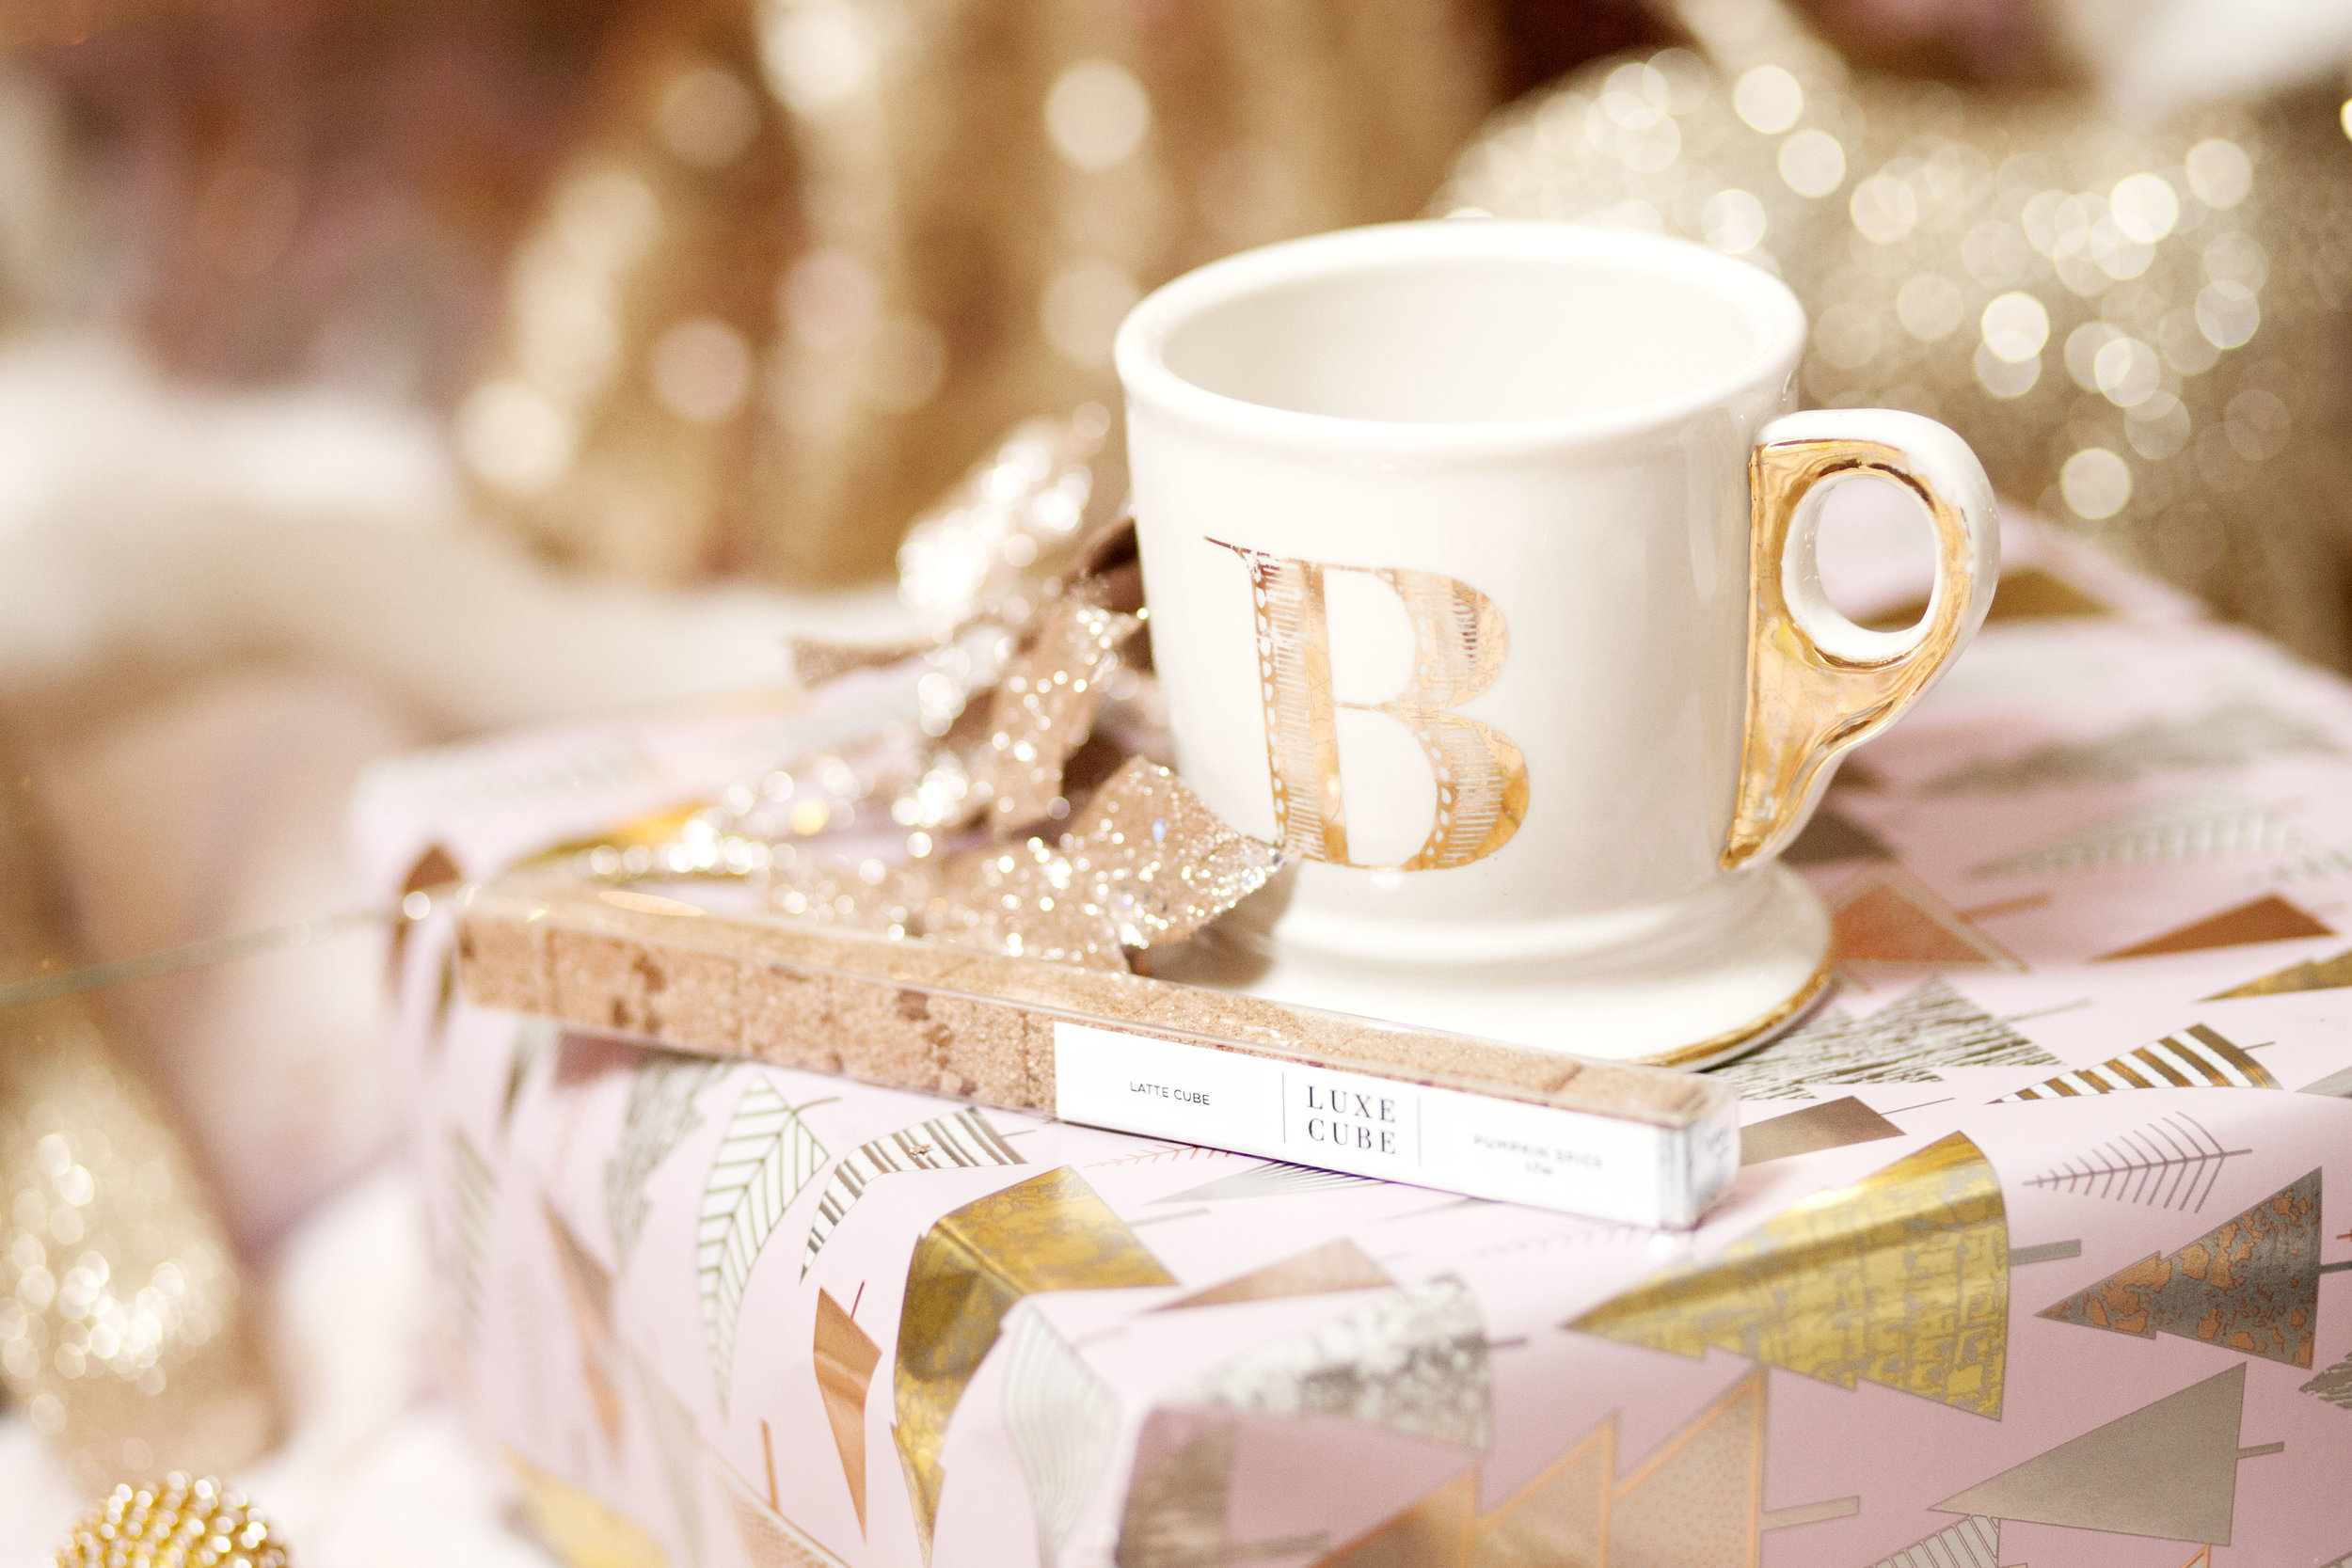 TeaSpressa Latte Cube - The Gilded Bellini Holiday Gift Guide